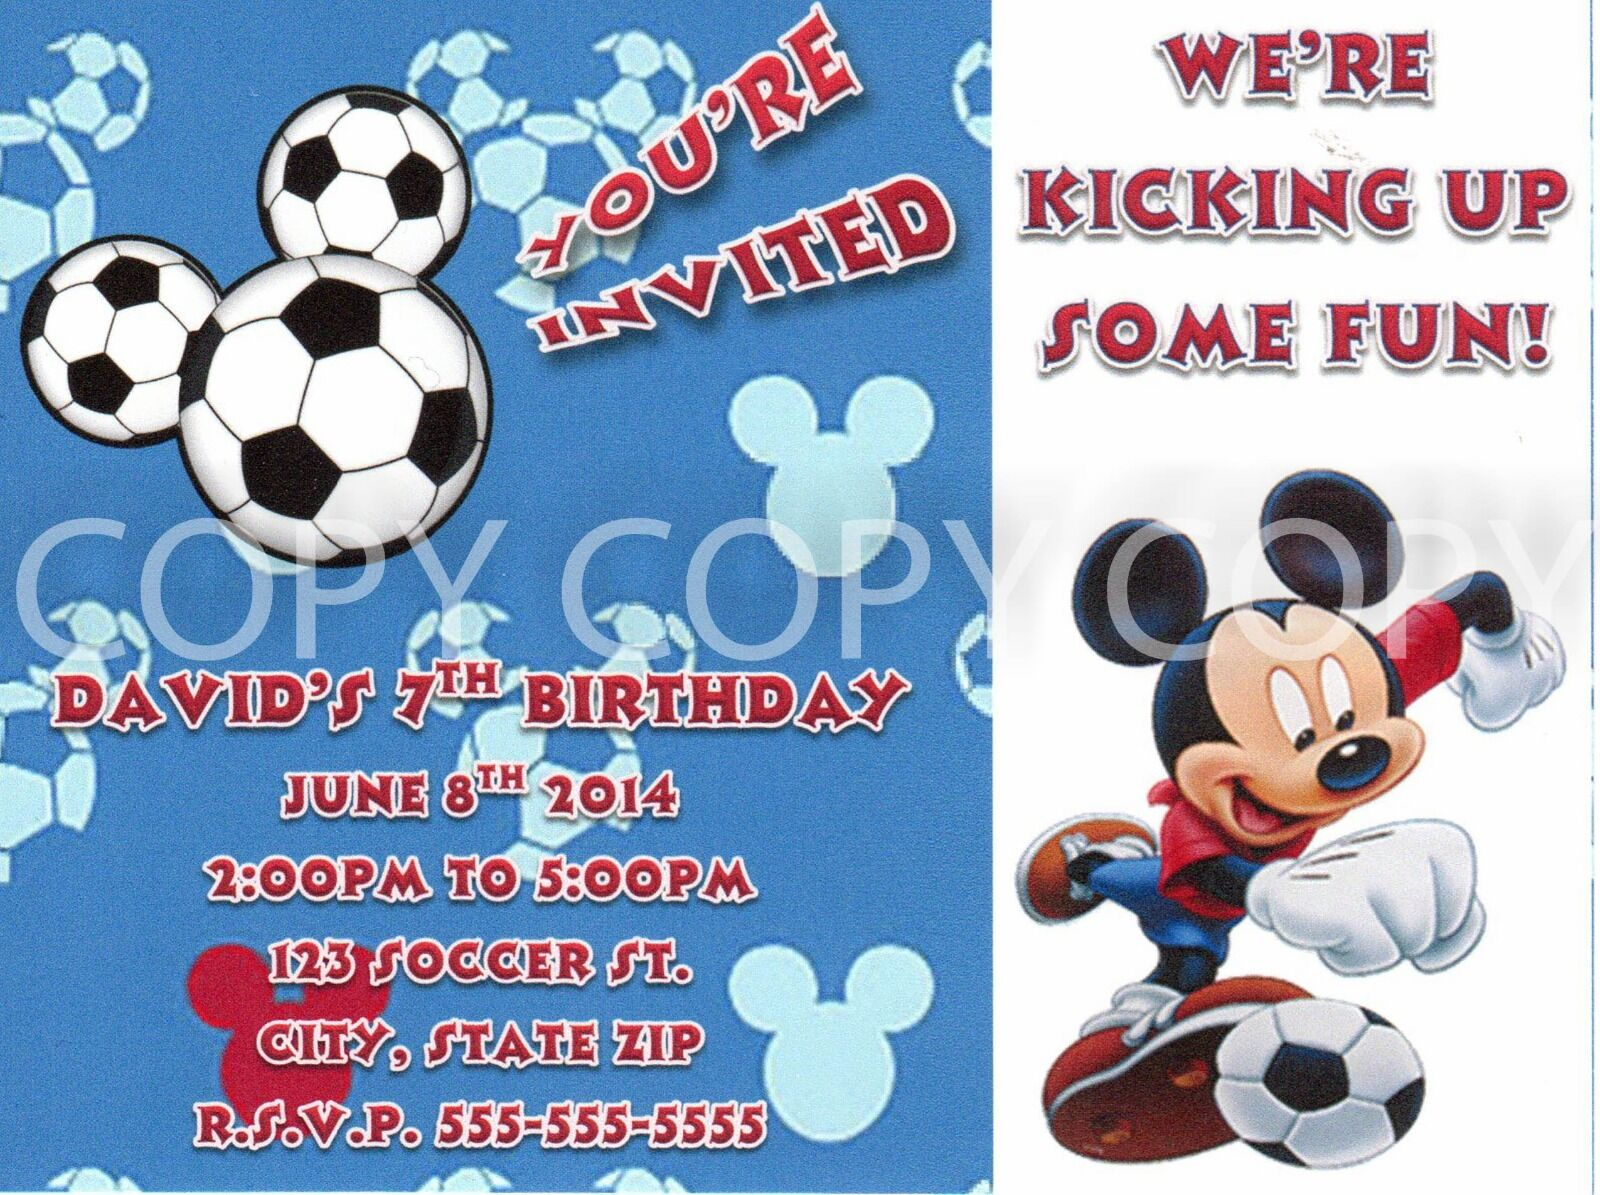 picture 1 of 2 - Soccer Party Invitations